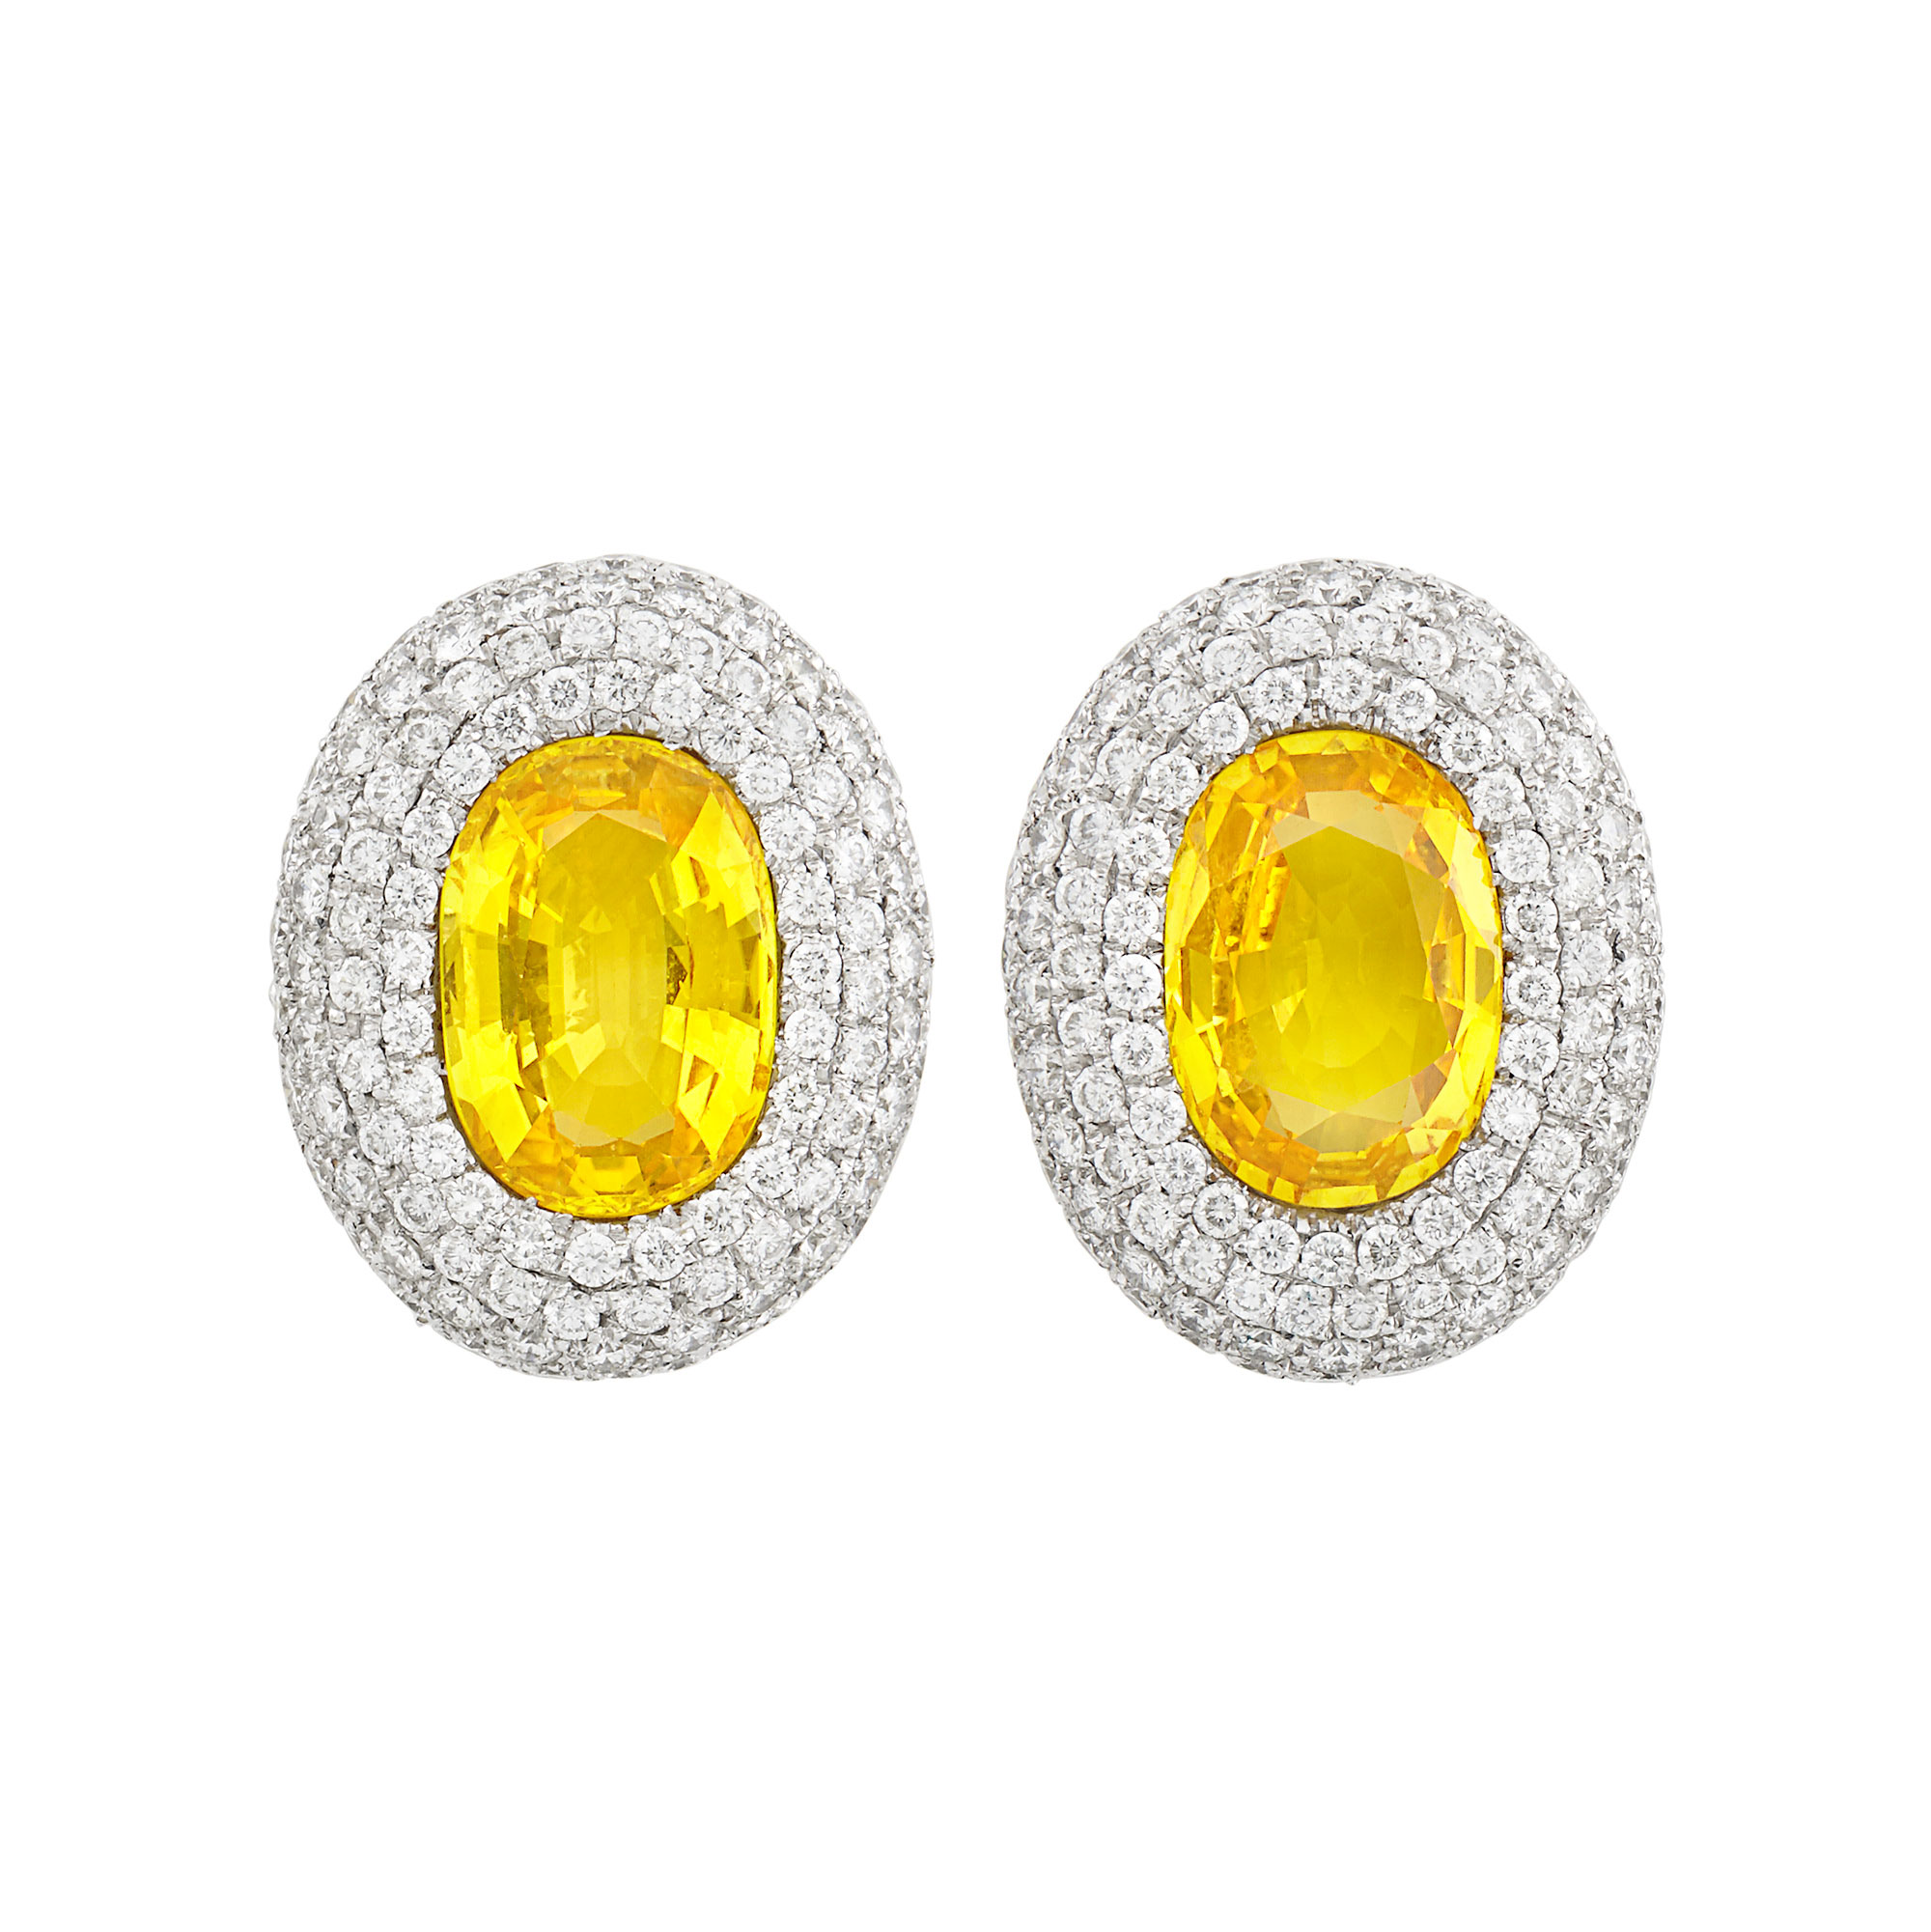 Lot image - Pair of White Gold, Yellow Sapphire and Diamond Earclips, Michele della Valle